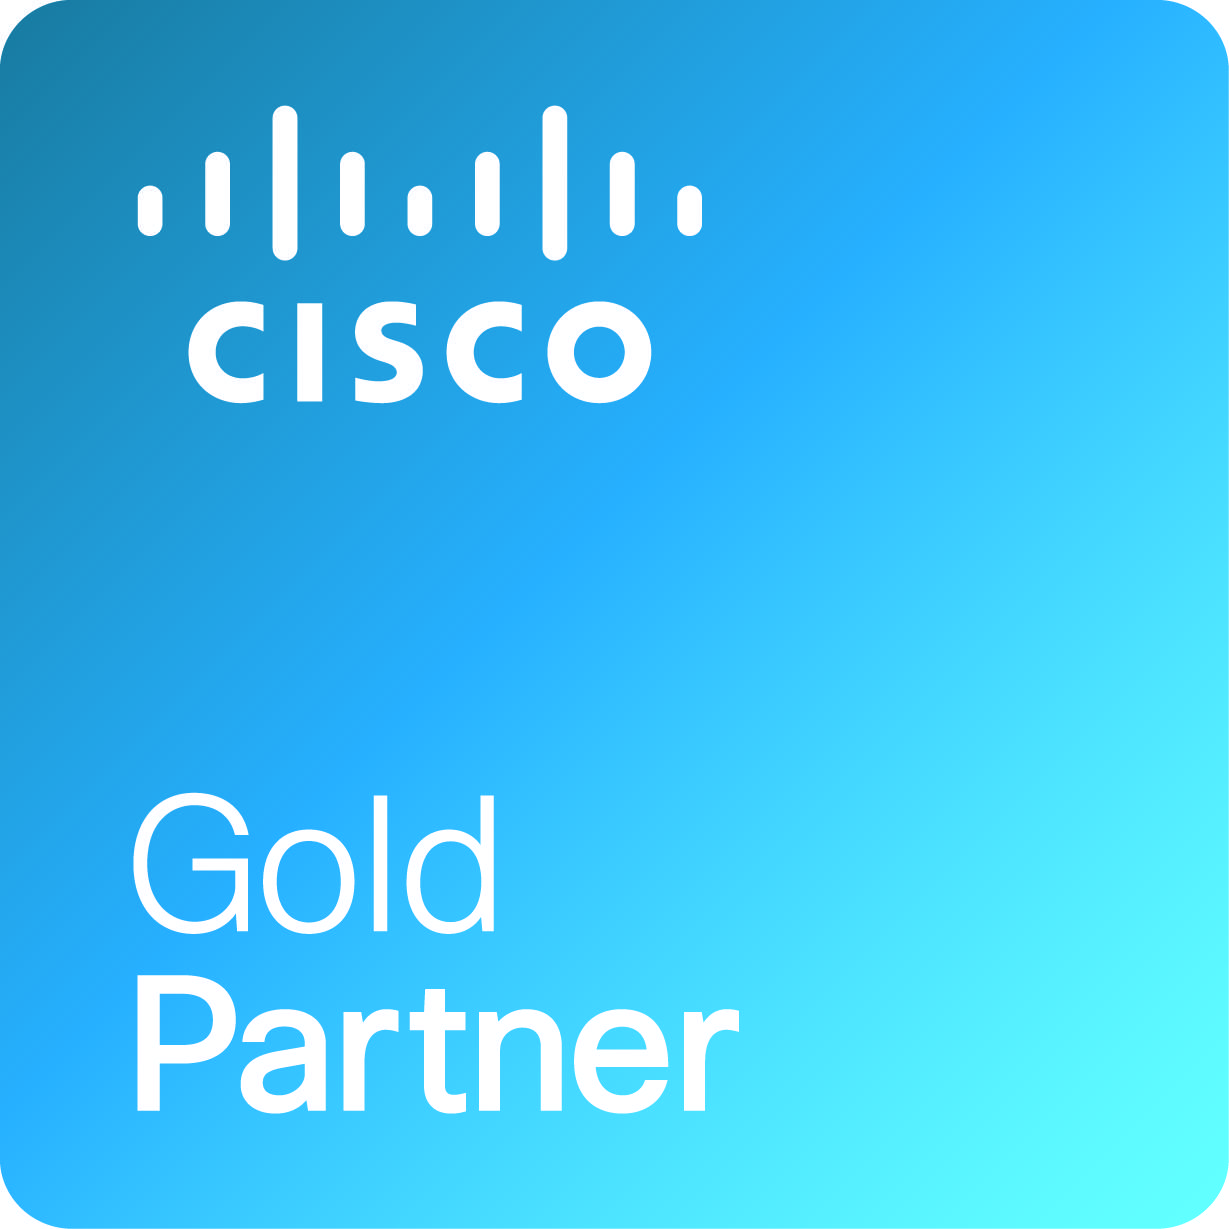 logo-cisco-goldpartner